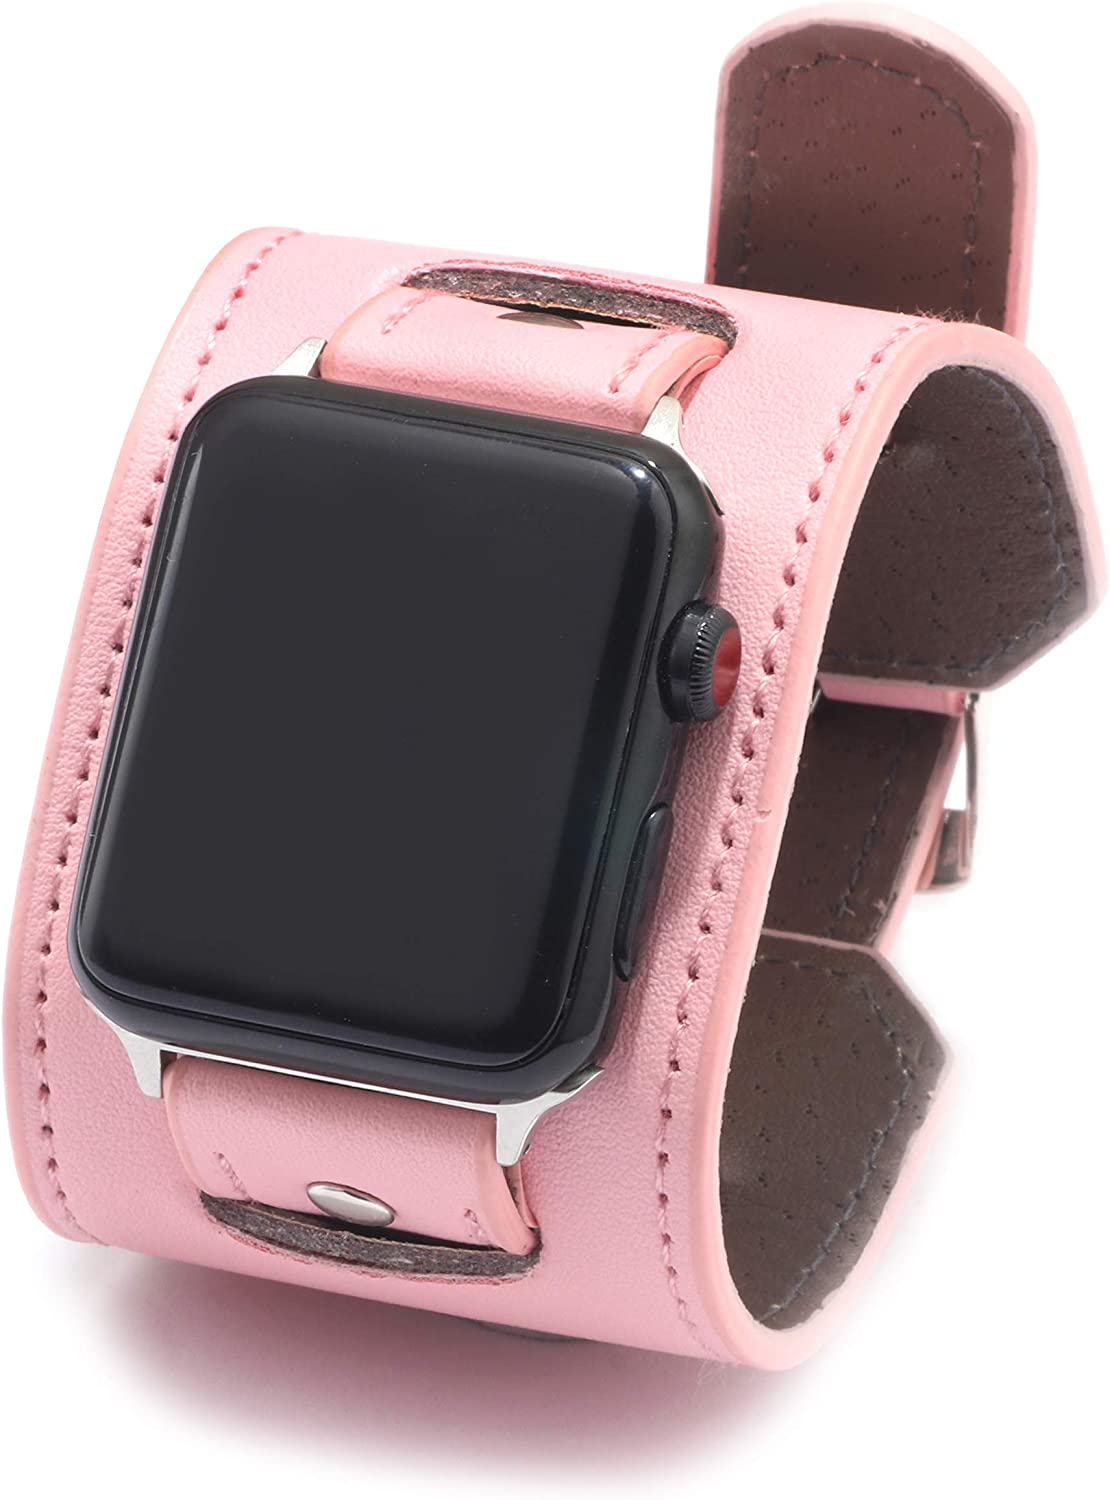 NIGHTCRUZ Compatible with Leather Apple Watch Band - Wide Leather Adjustable Bracelet for Apple Watch Series 5/4/3 (Pink, 38mm/40mm)